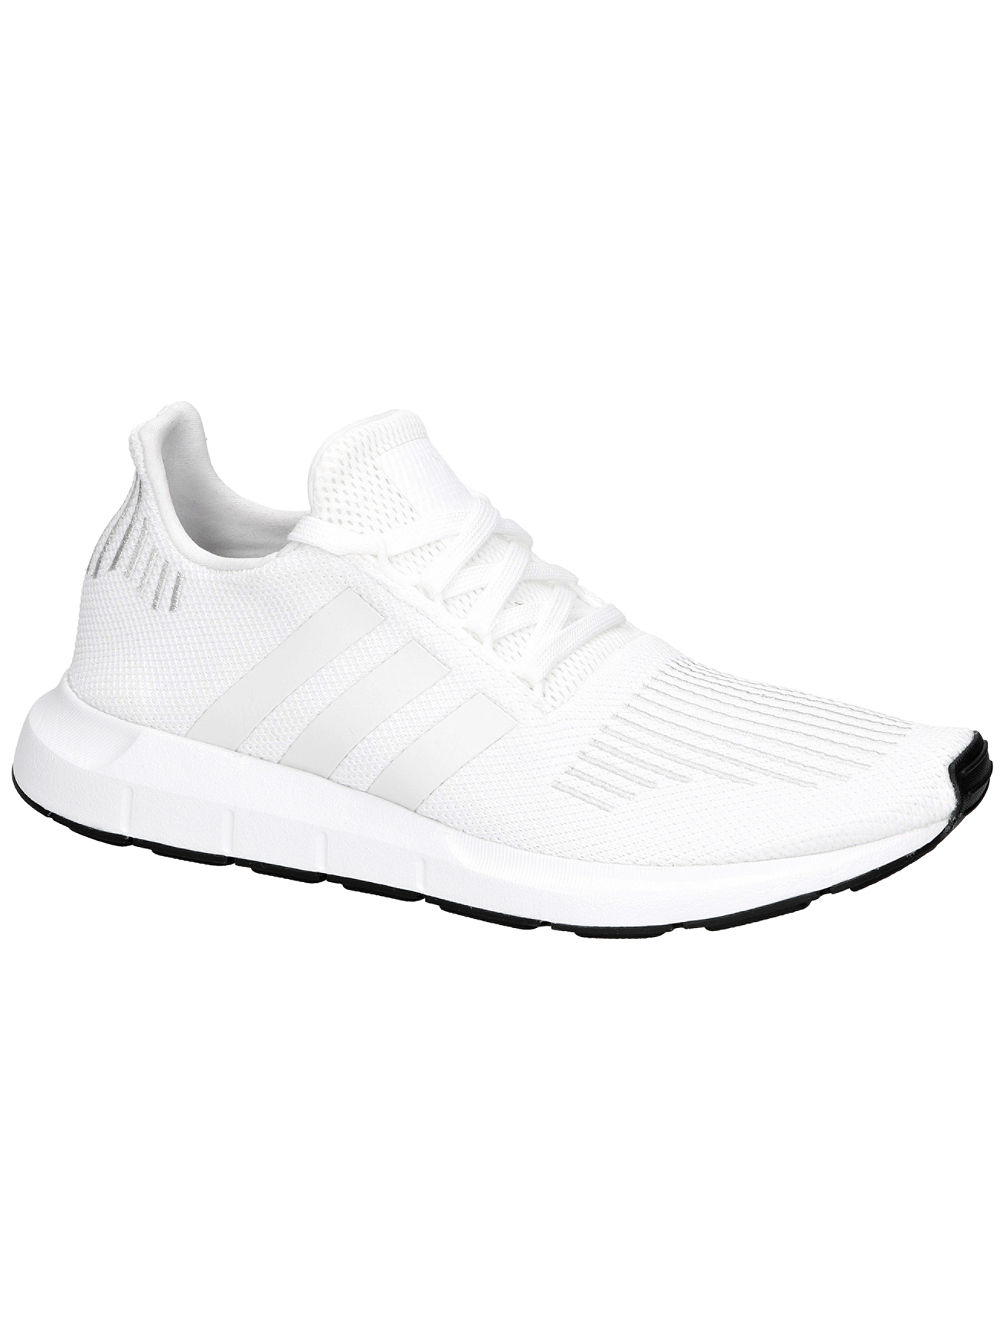 7380dbecf02f Buy adidas Originals Swift Run Sneakers online at Blue Tomato